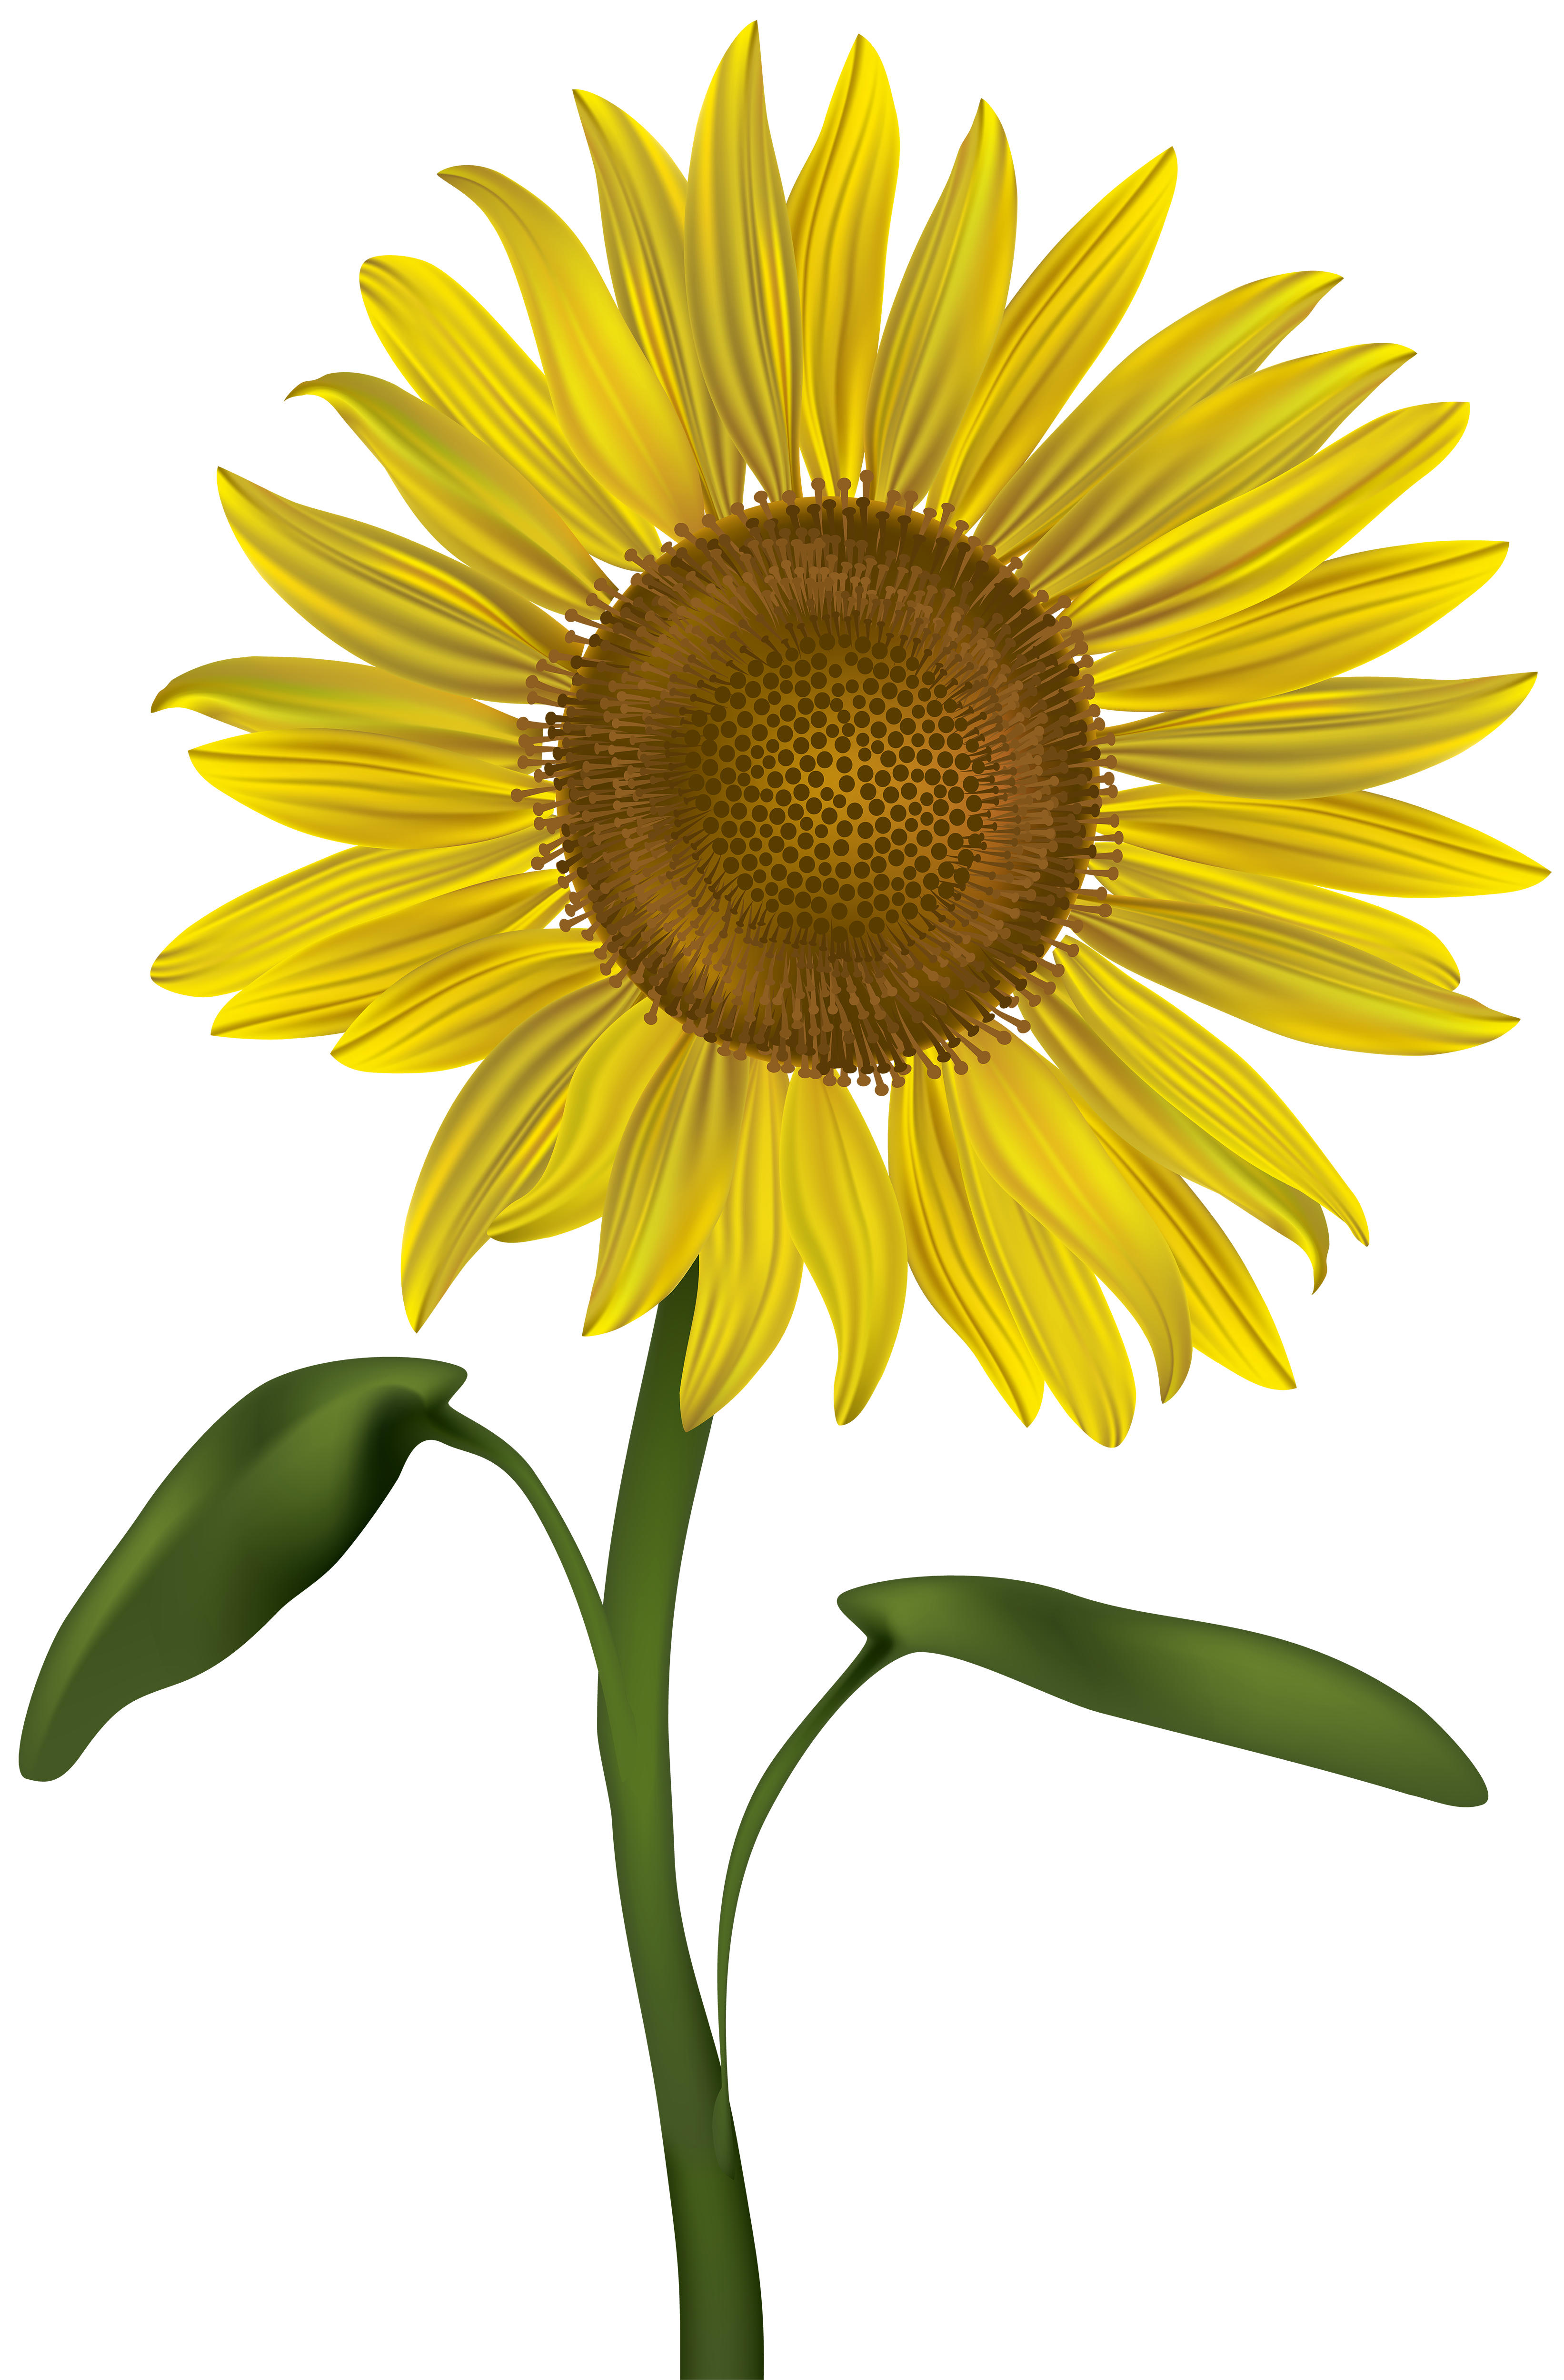 Sunflower png transparent. Clip art image gallery